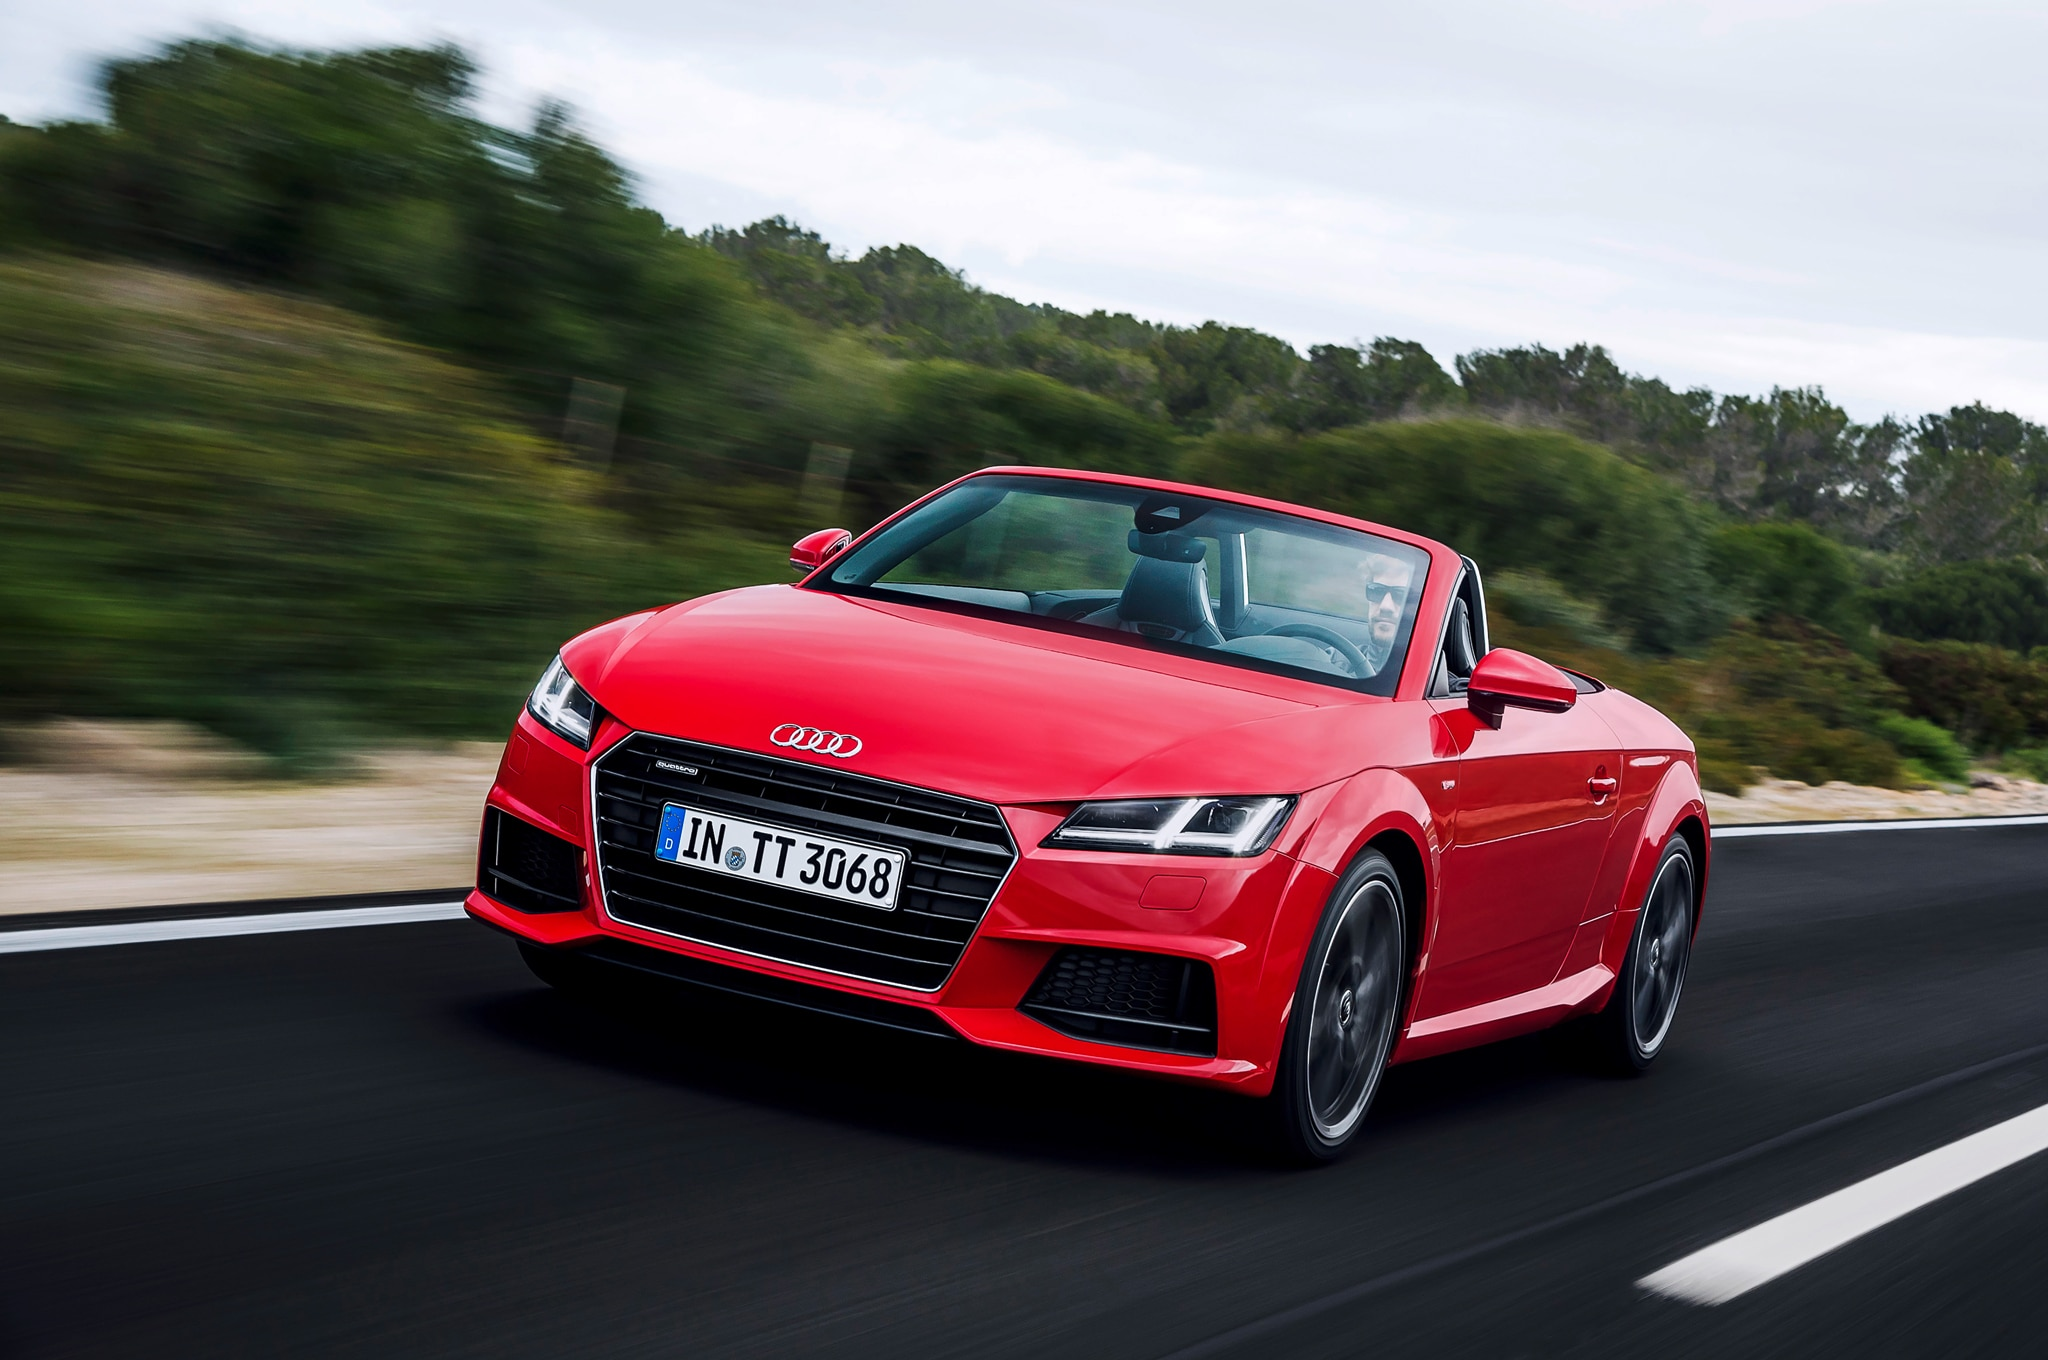 2016 Audi TT/TTS Roadster Specifications